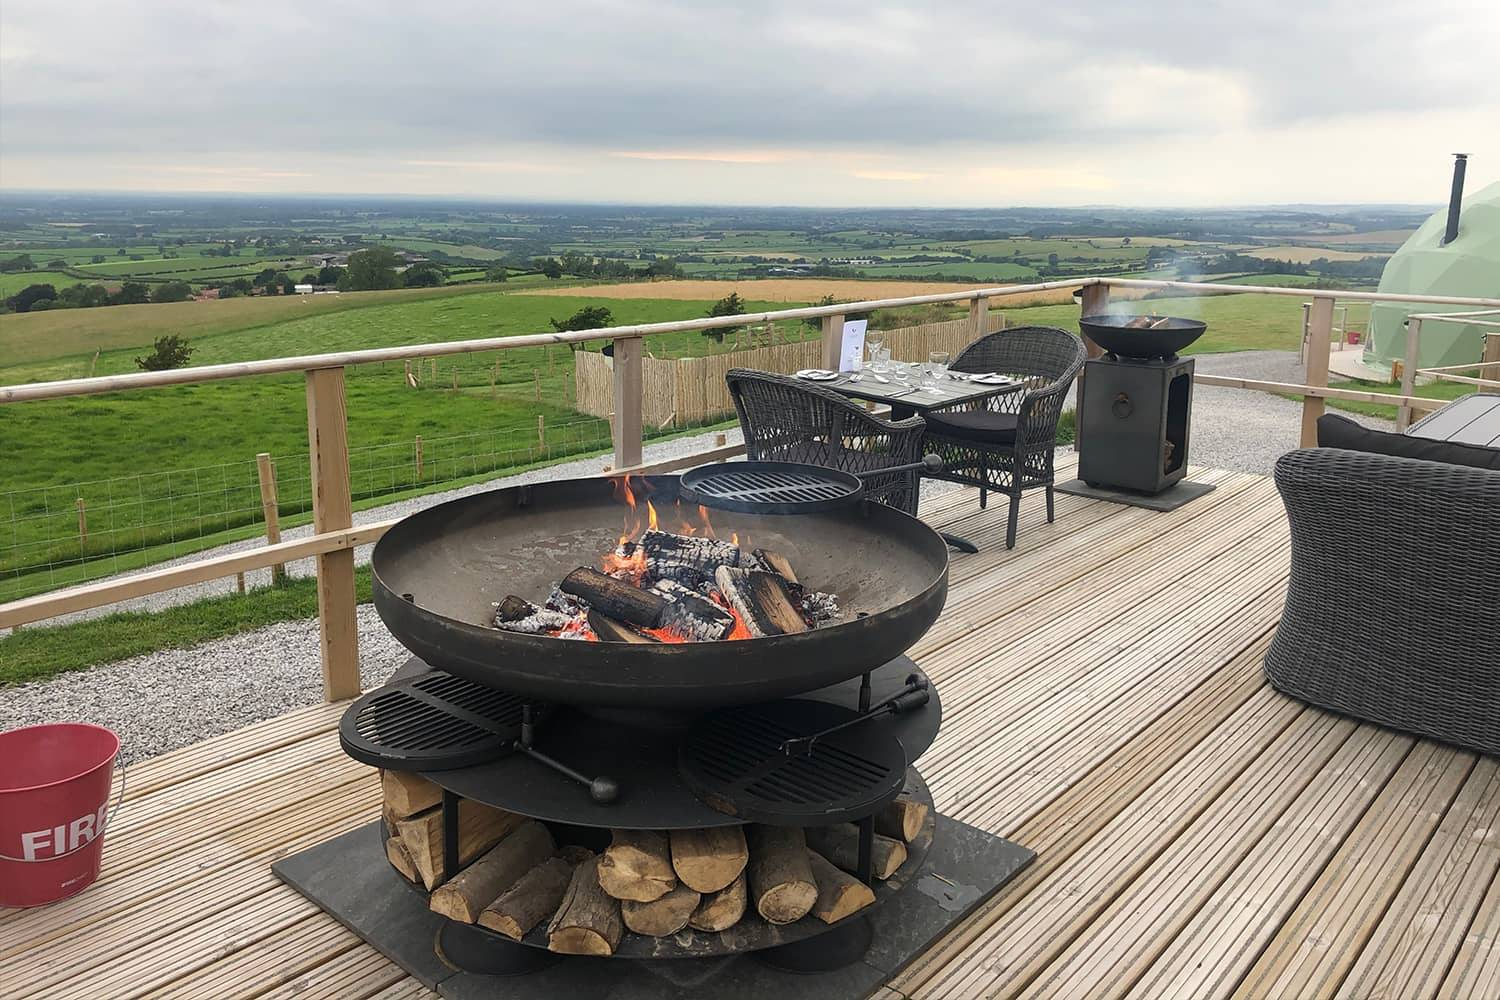 Fire Pit On Decking In The Countryside